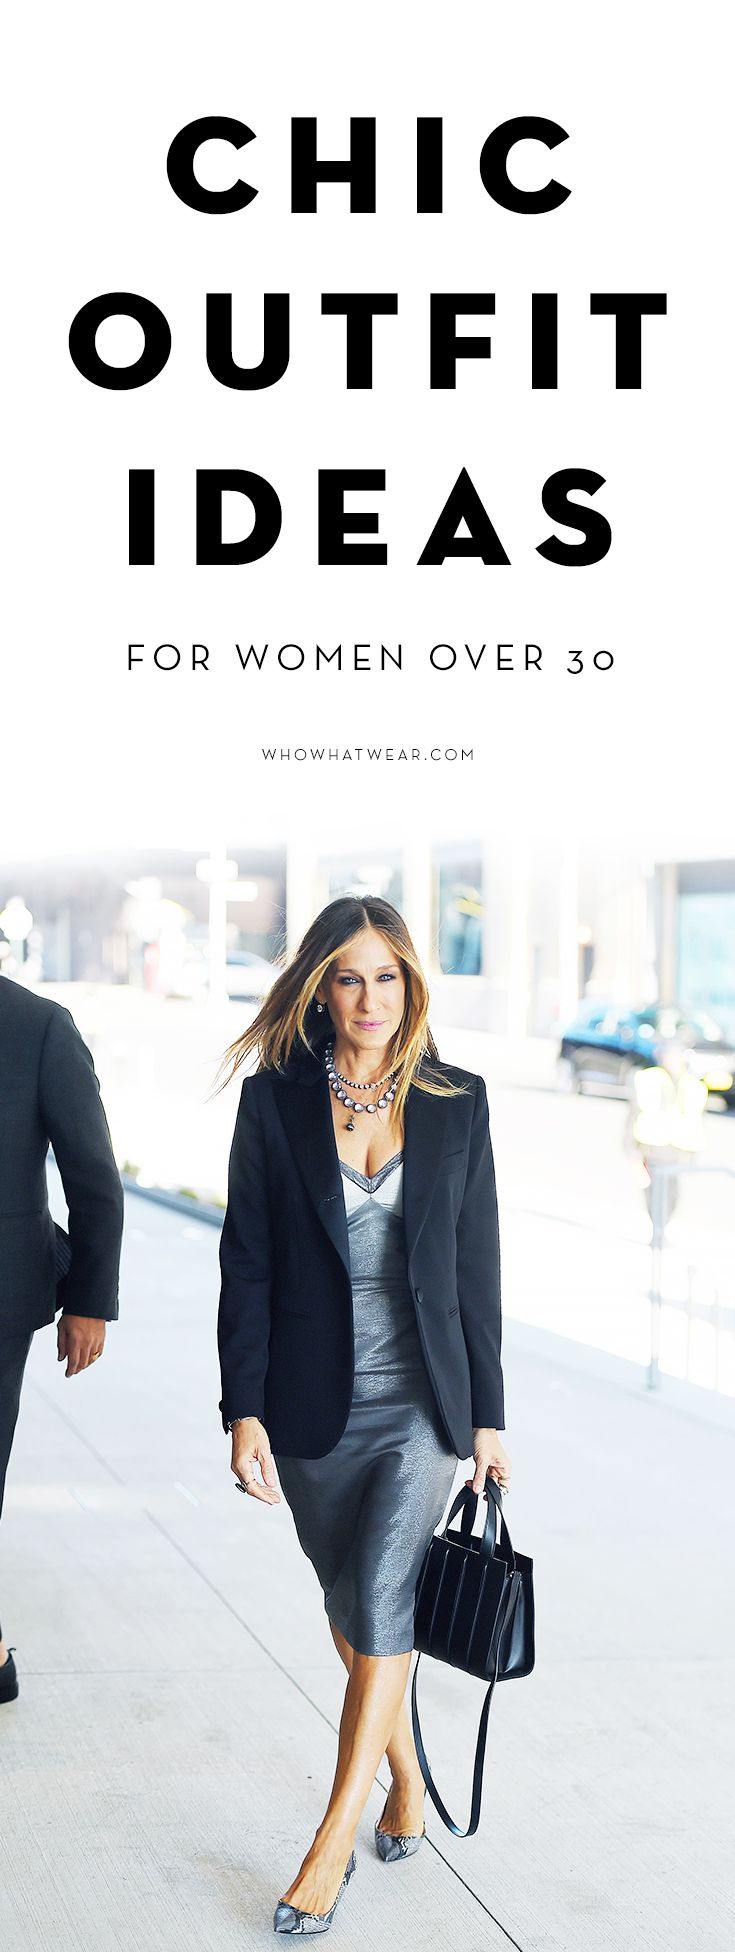 The new york vanity was named perfectly it has that city chic look - 5 Chic Outfit Ideas For Women Over Age 30